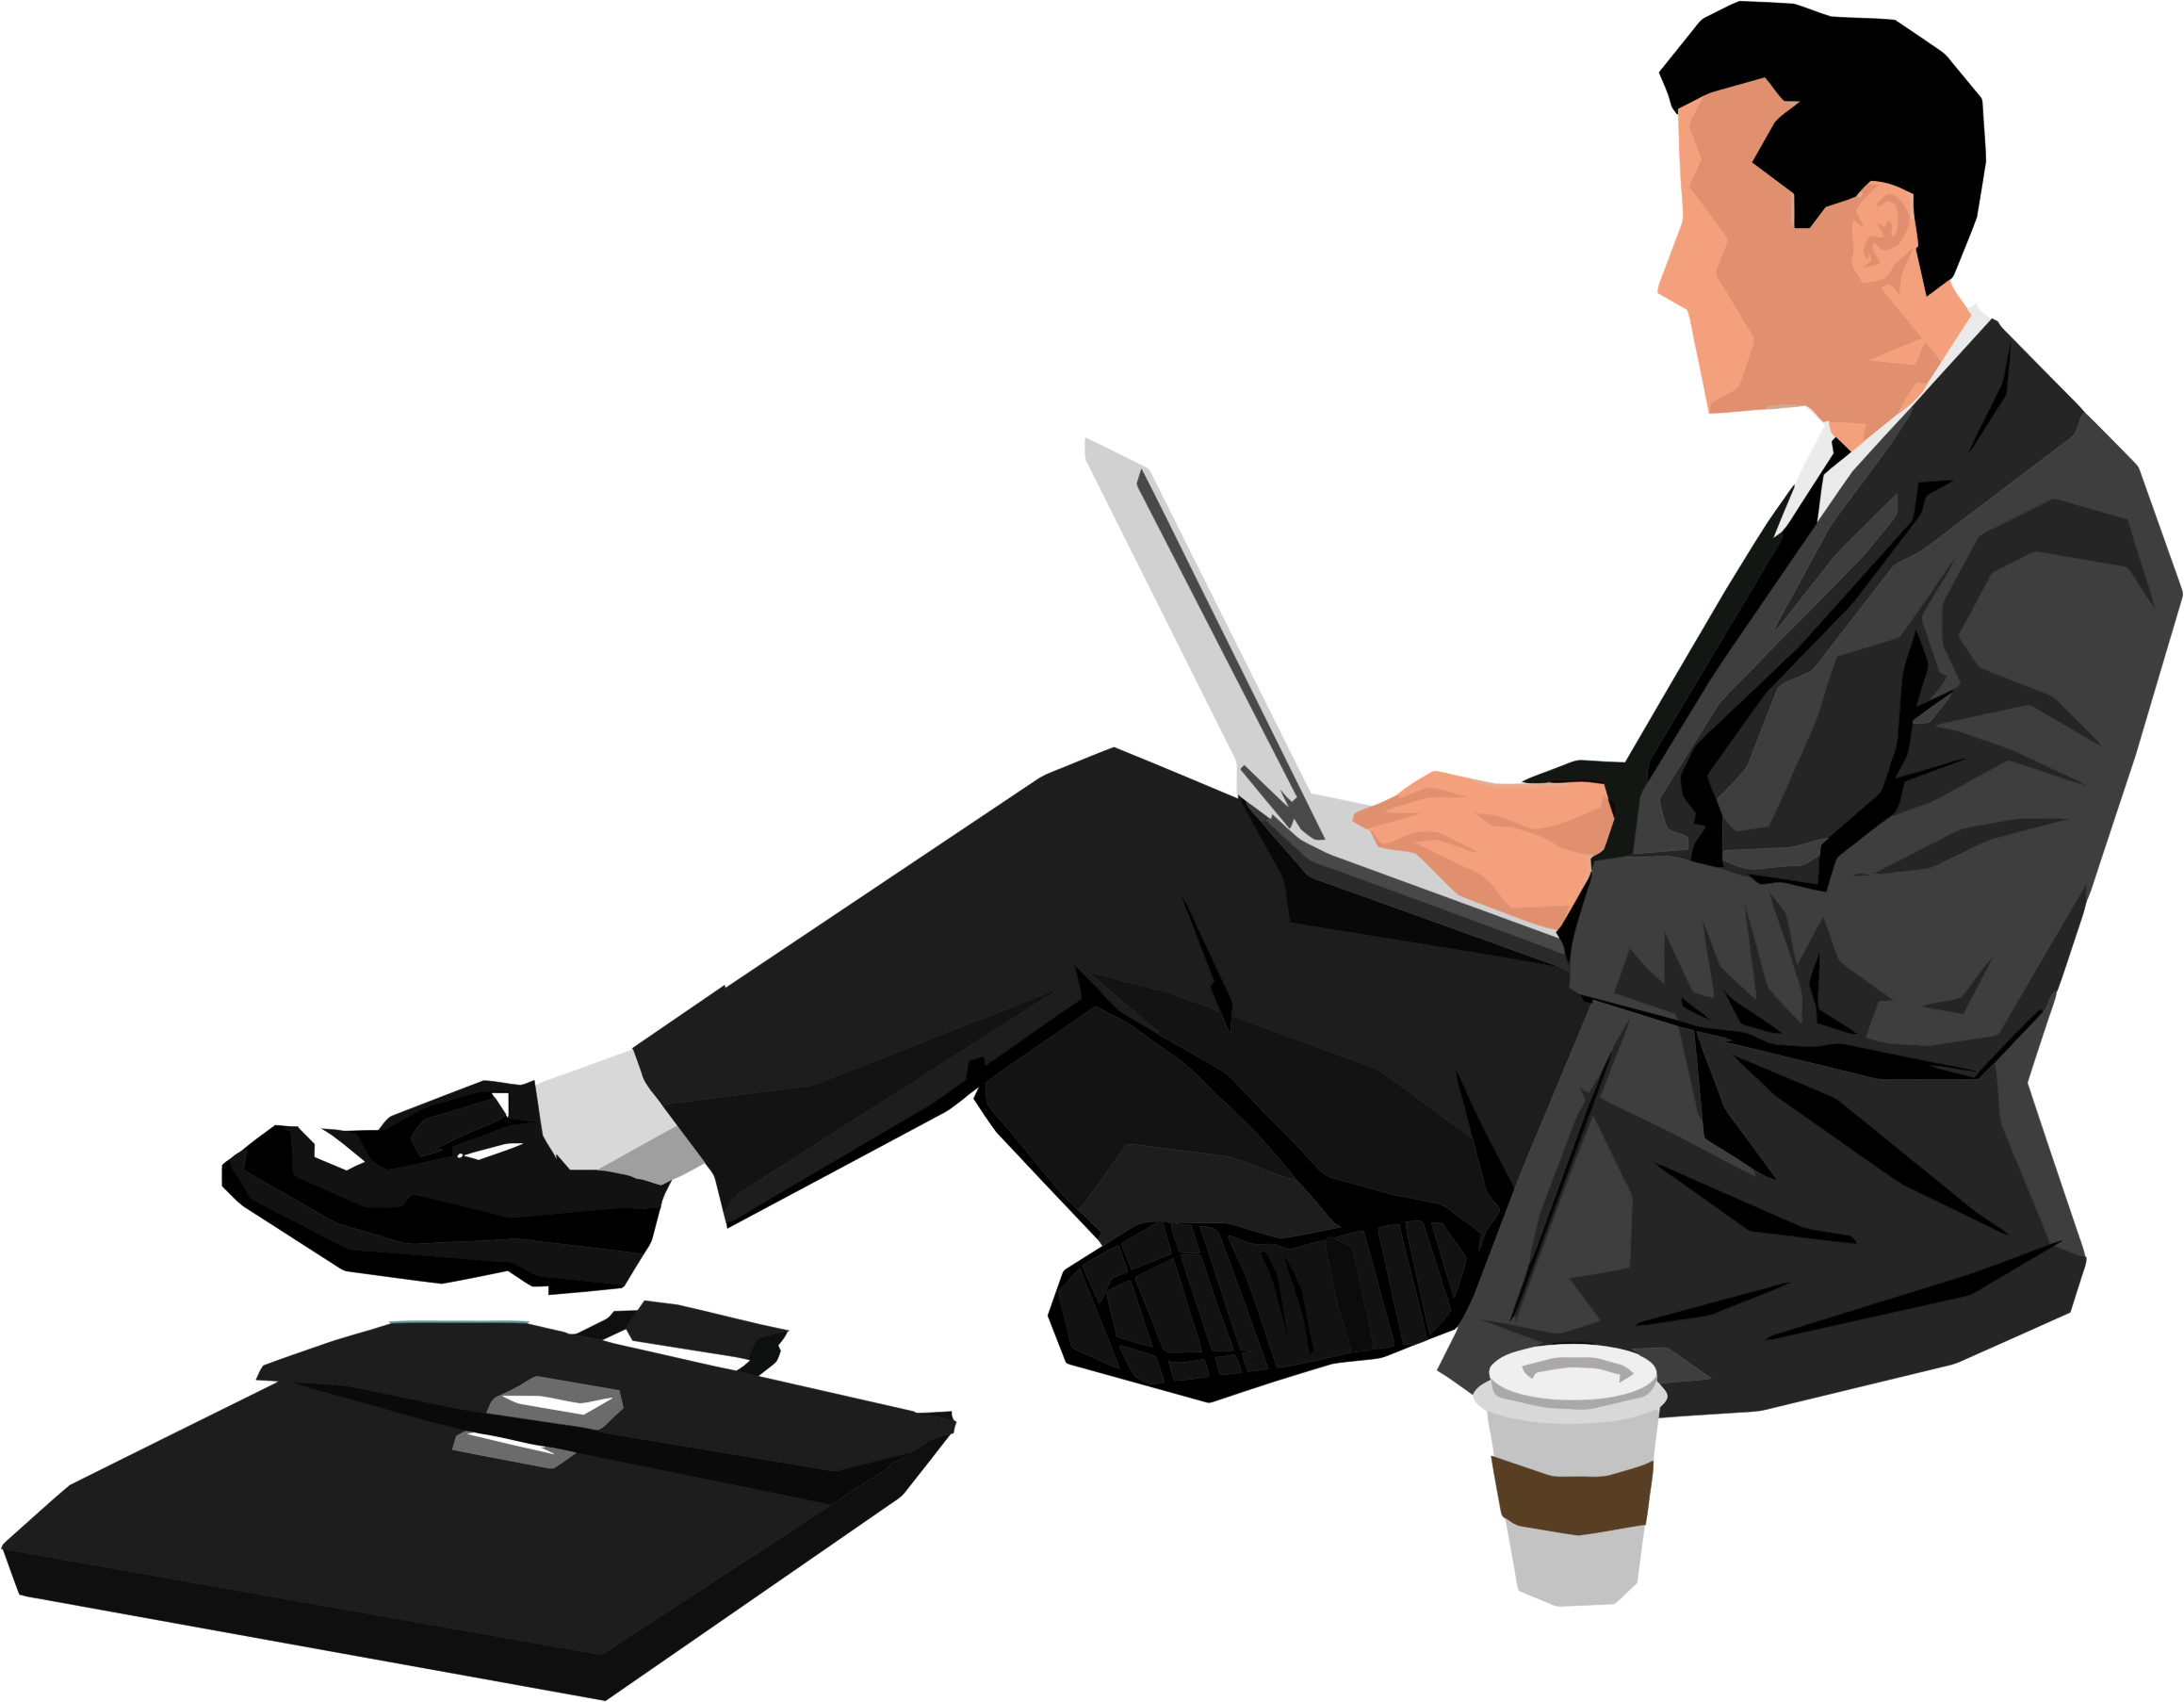 Person clipart laptop. Man sitting with big